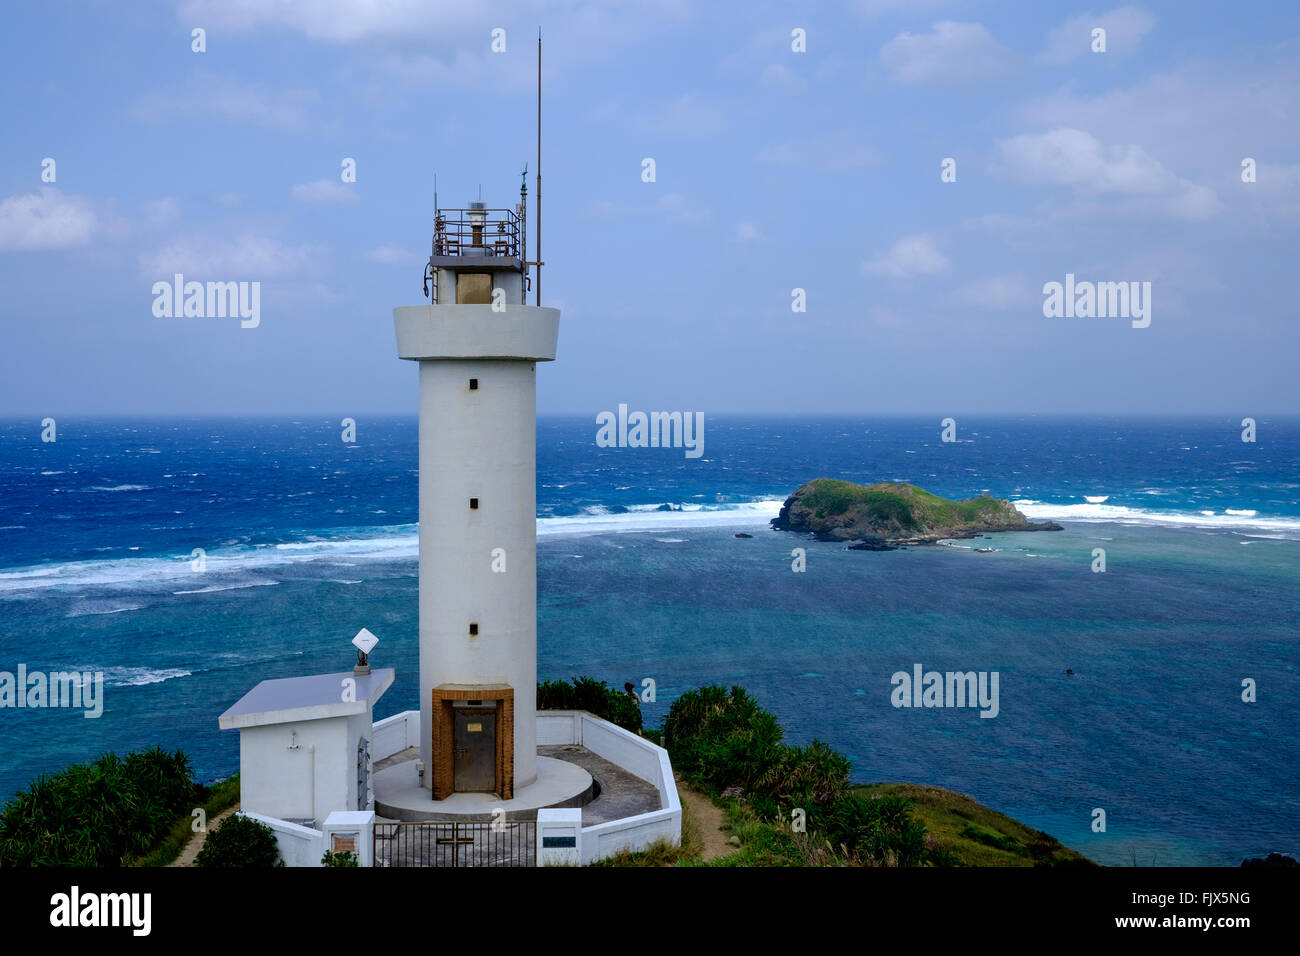 Lighthouse On Sea Against Cloudy Sky - Stock Image